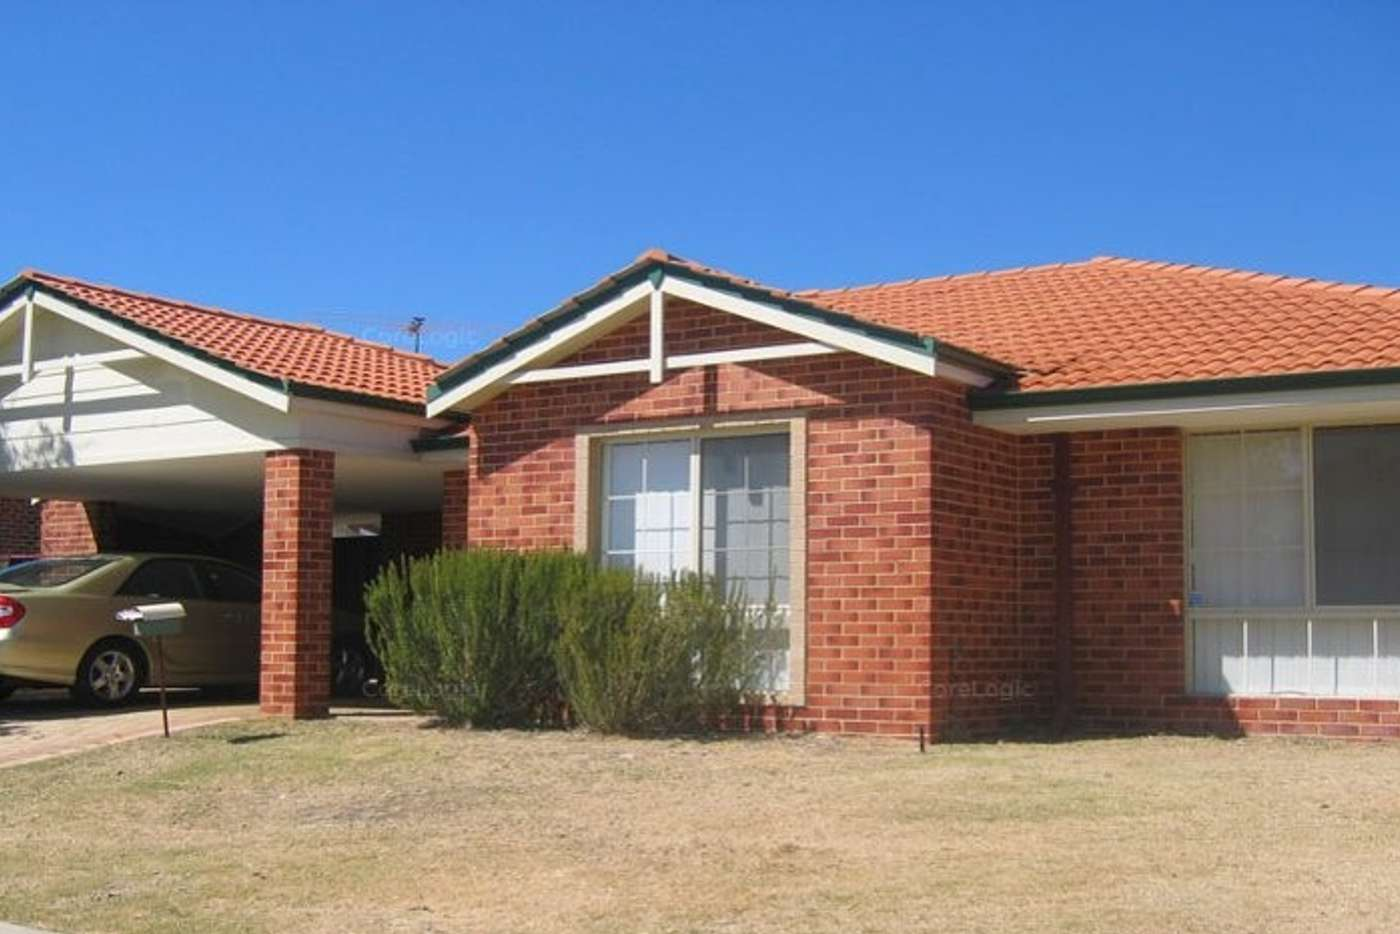 Main view of Homely house listing, 1/2 Candy Street, Morley WA 6062